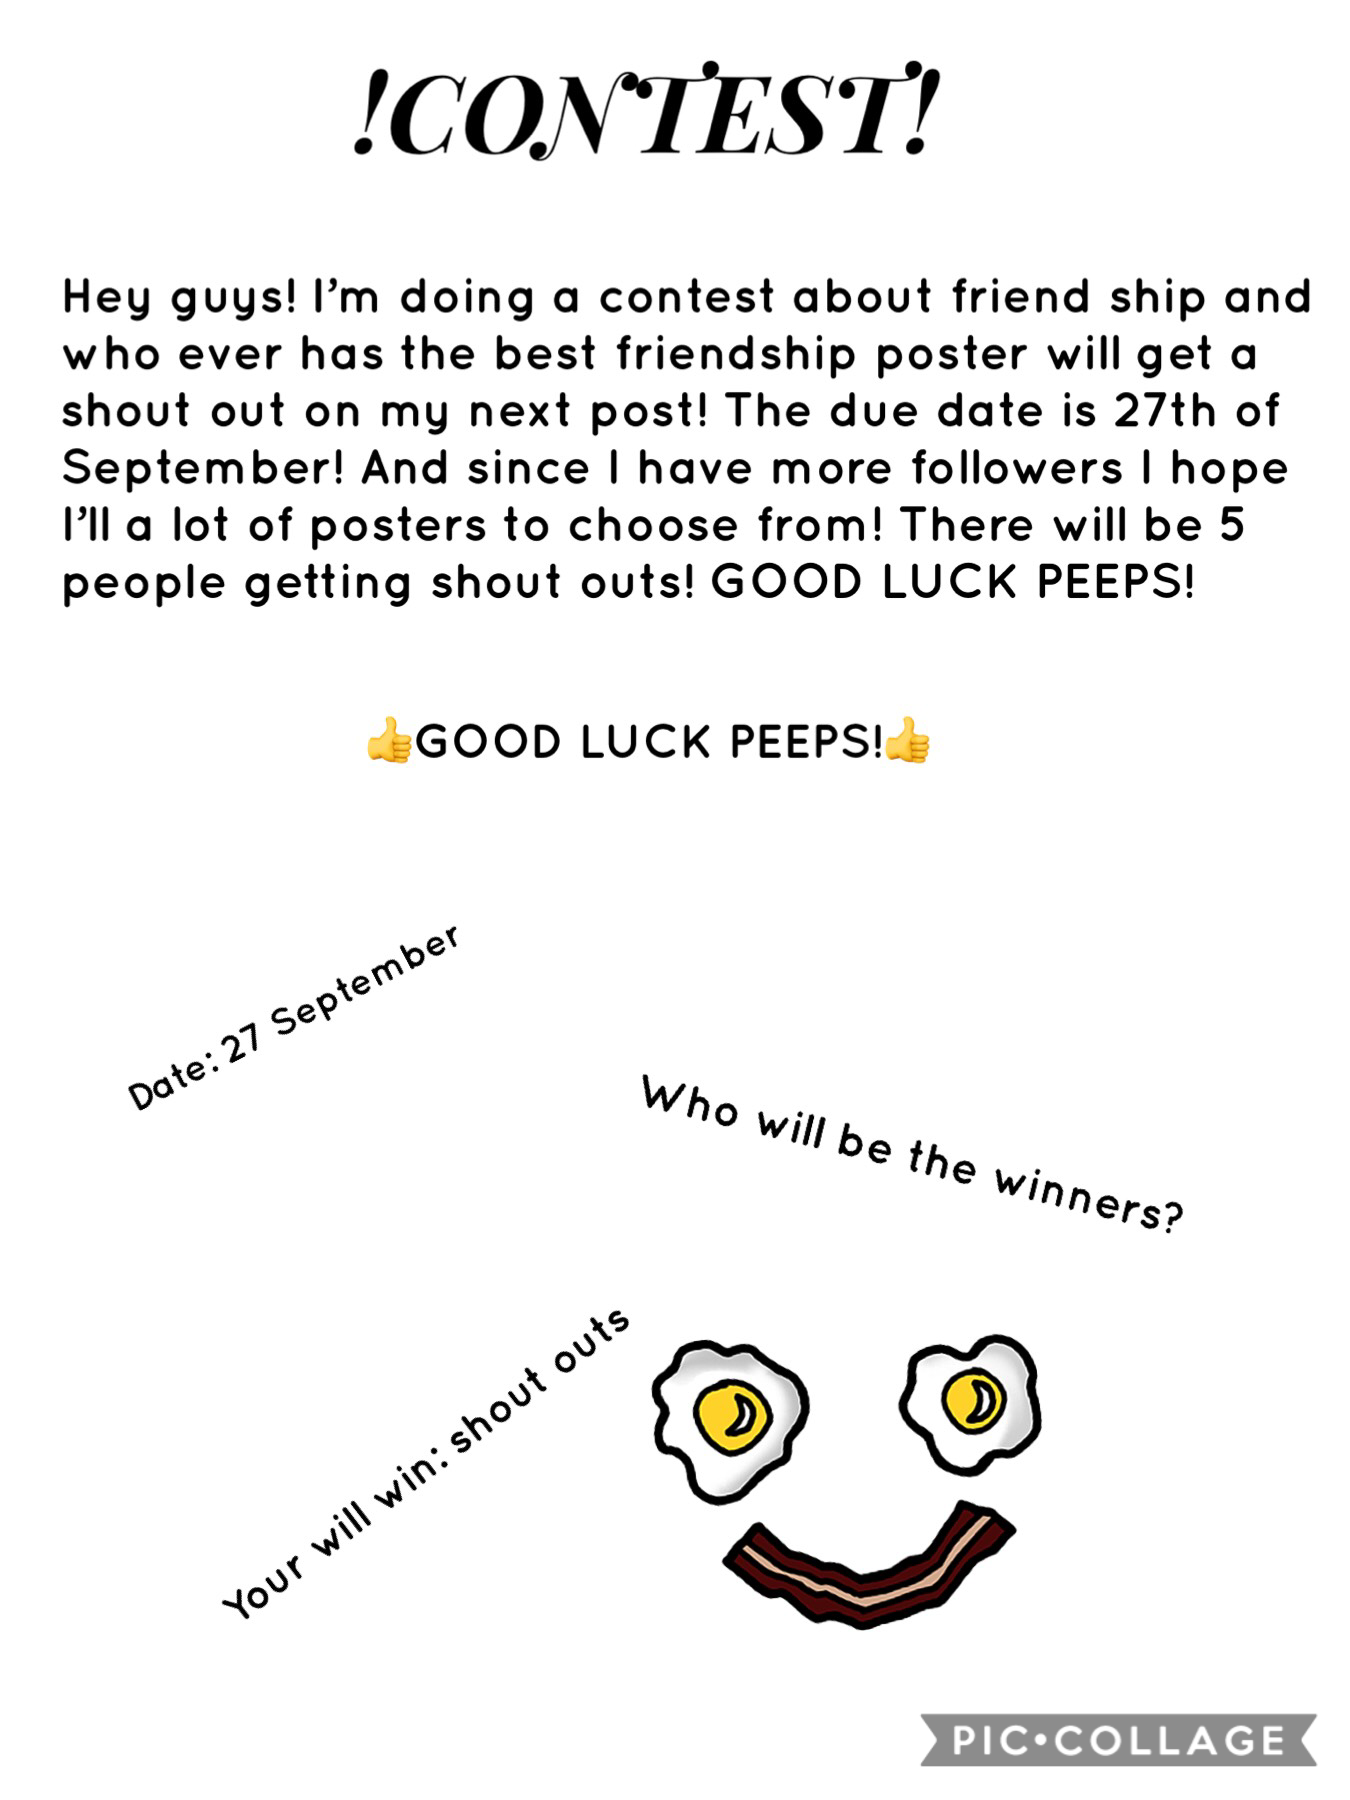 Follow me! And good luck for those who are participating!